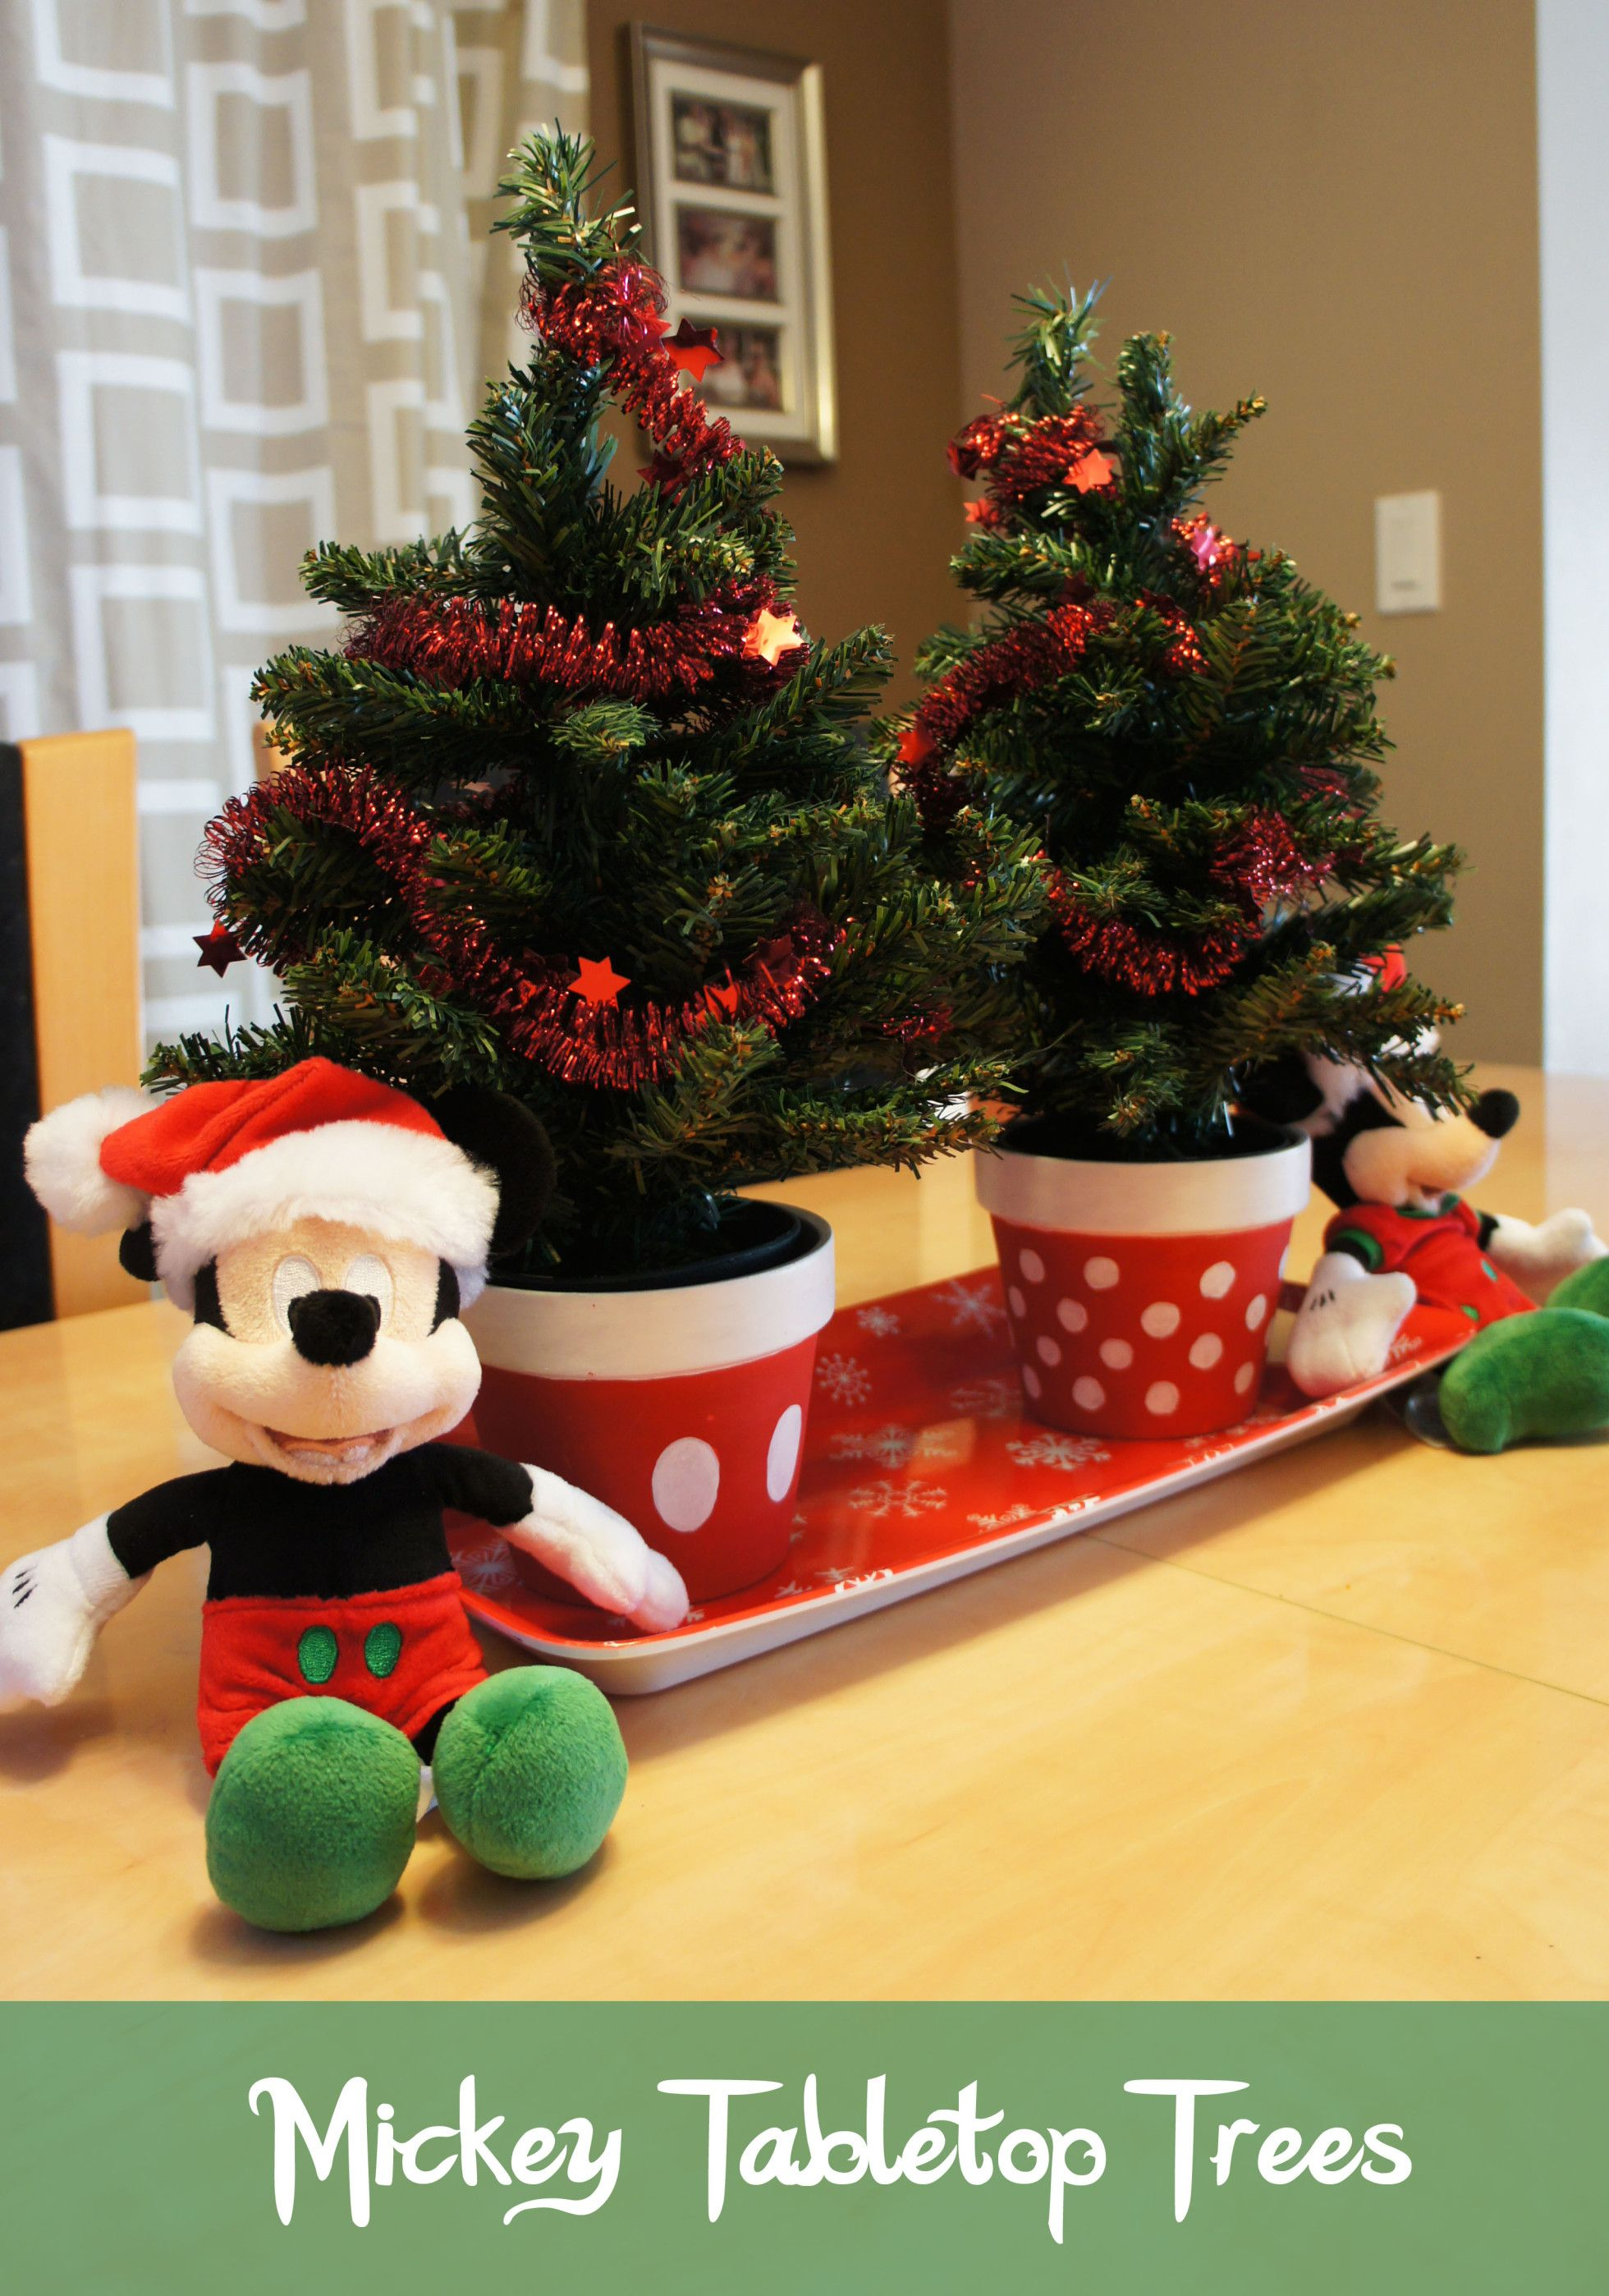 Tabletop Decorations: Merry Mickey Snowman and Tabletop ...